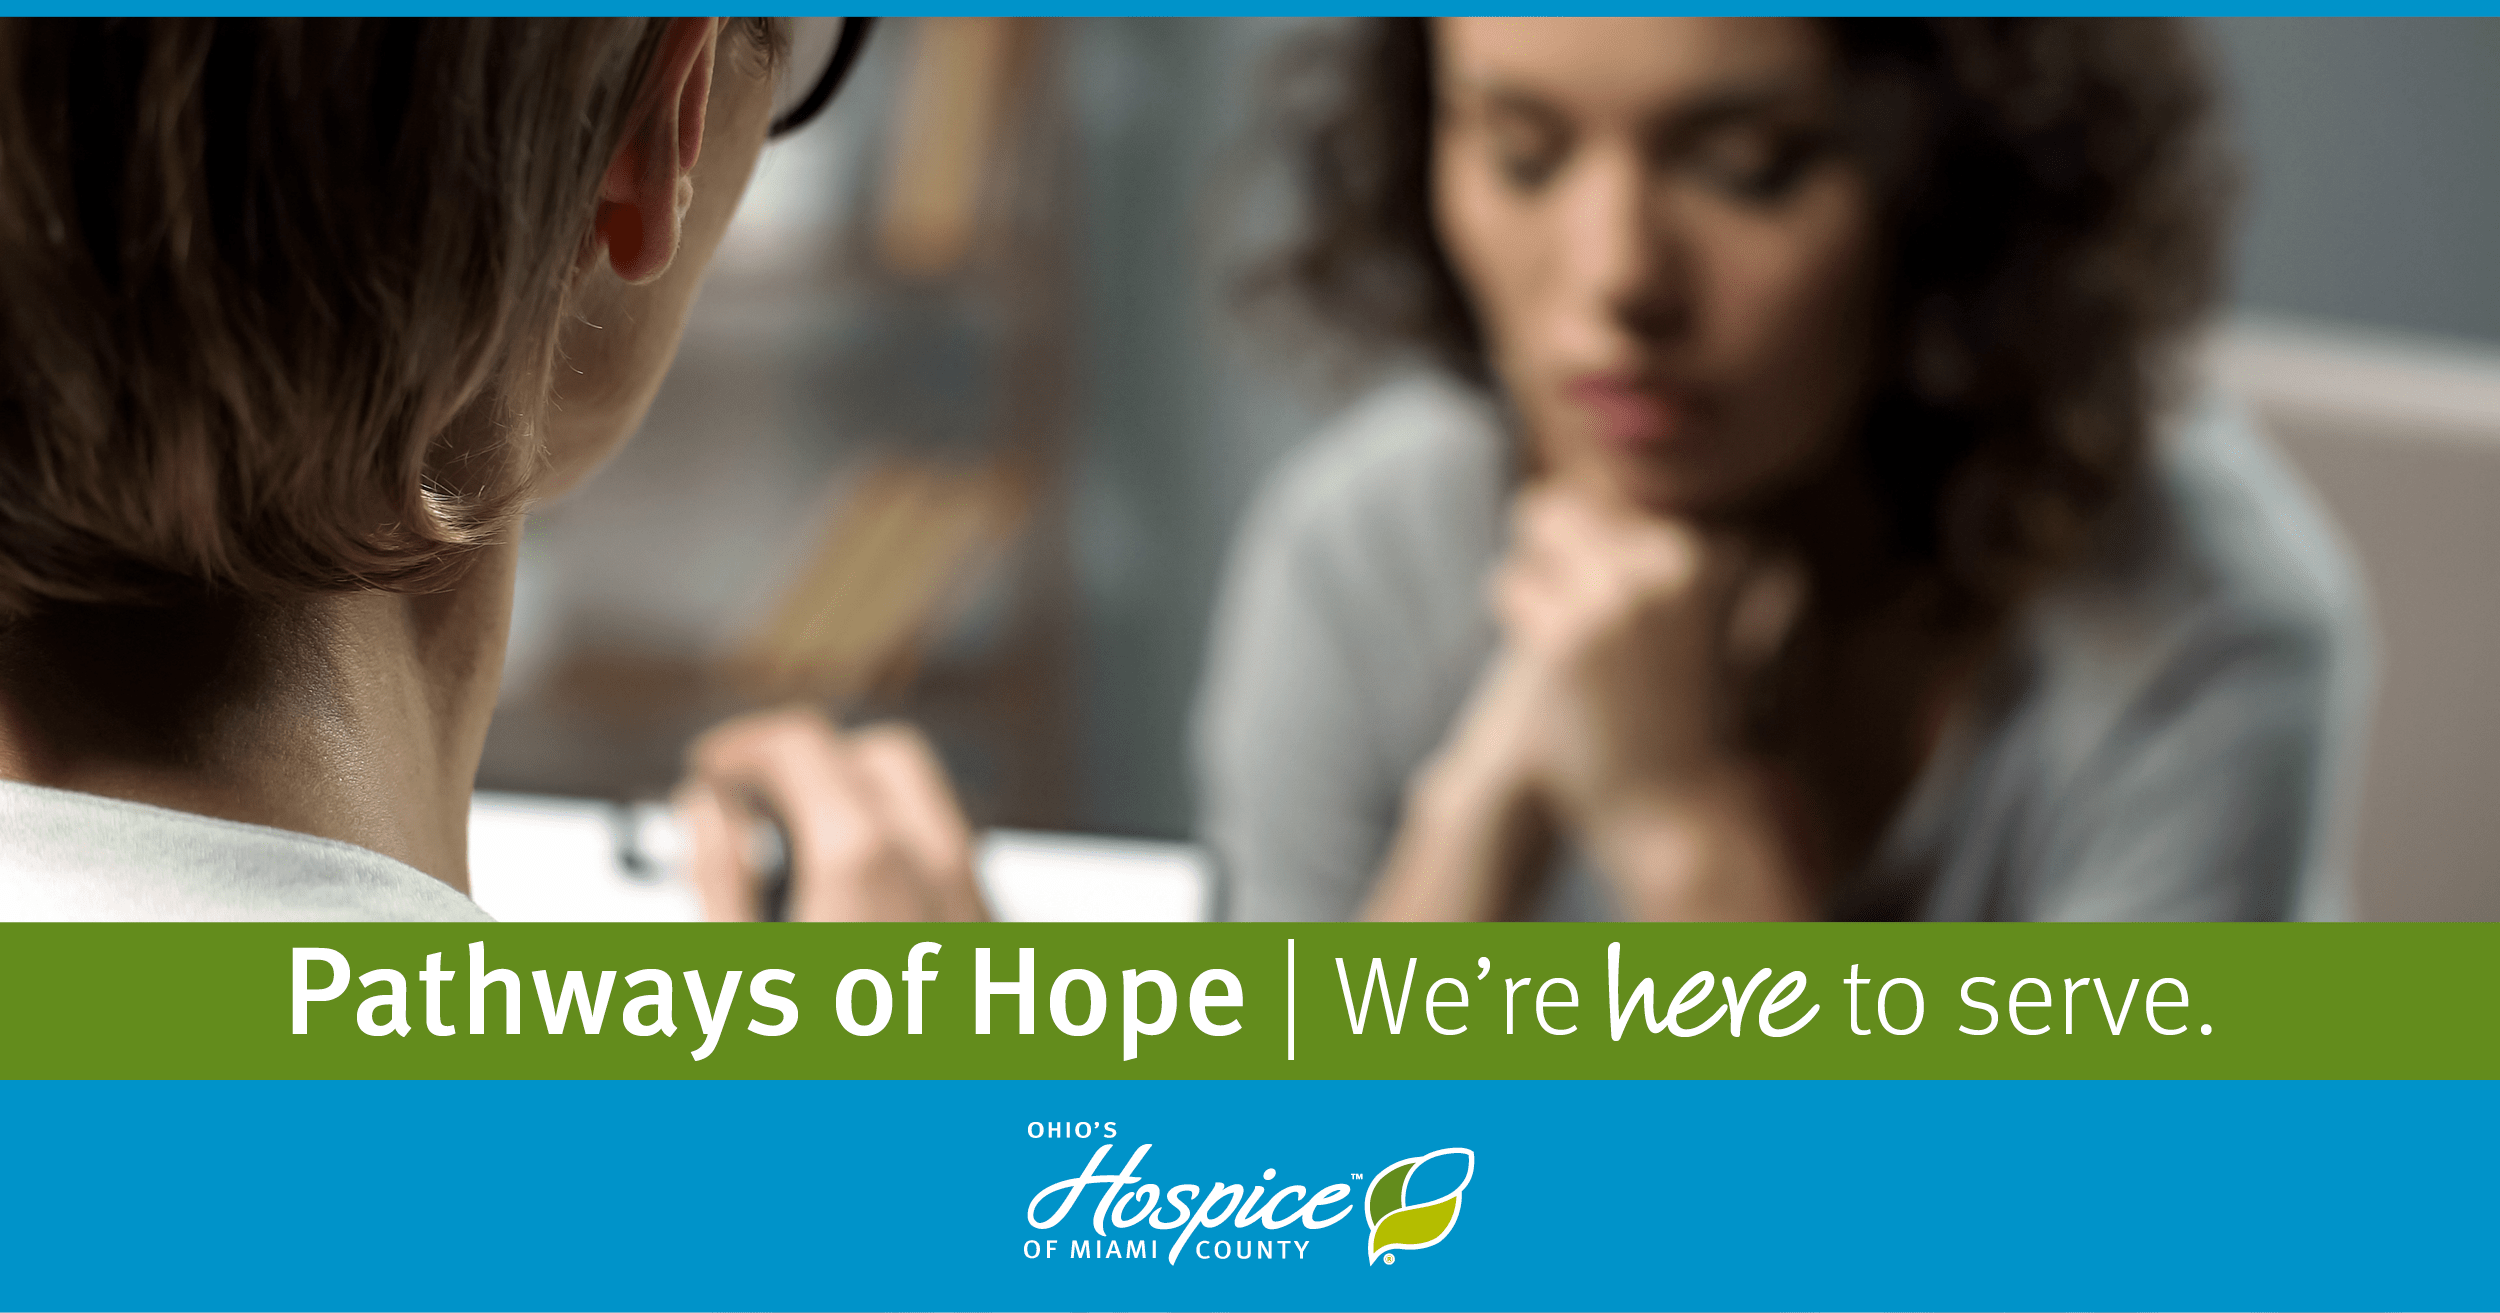 Pathways Of Hope Grief Experts Support Patients And Families During The COVID-19 Pandemic